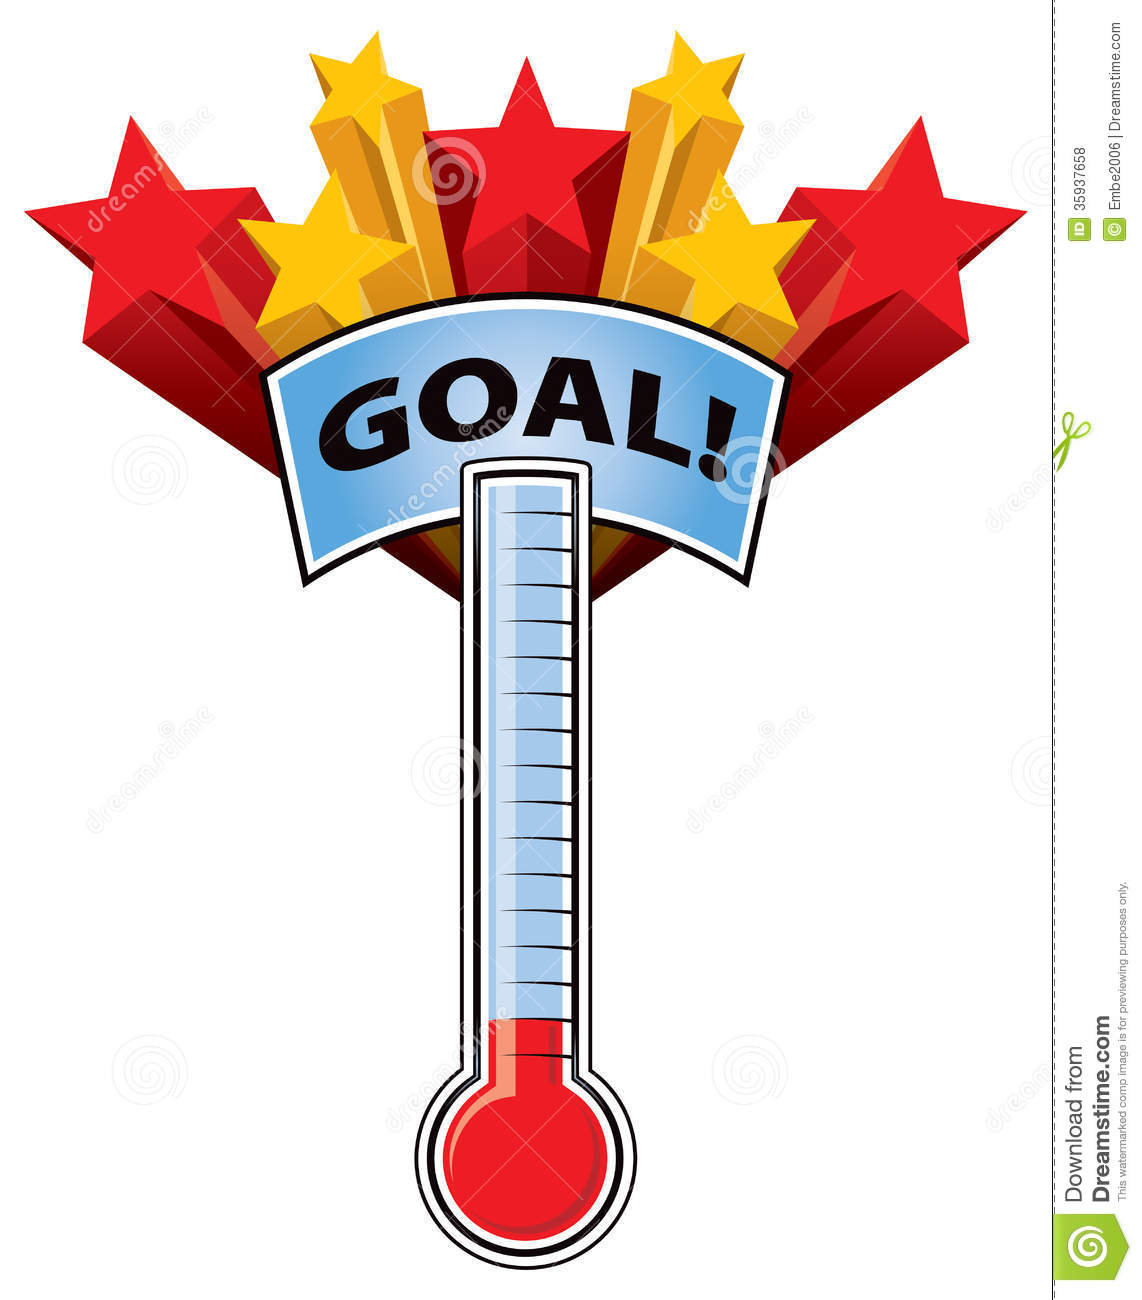 thermometer goal royalty free stock photos image 35937658 Fundraising Thermometer Clip Art Glass blank thermometer clip art free